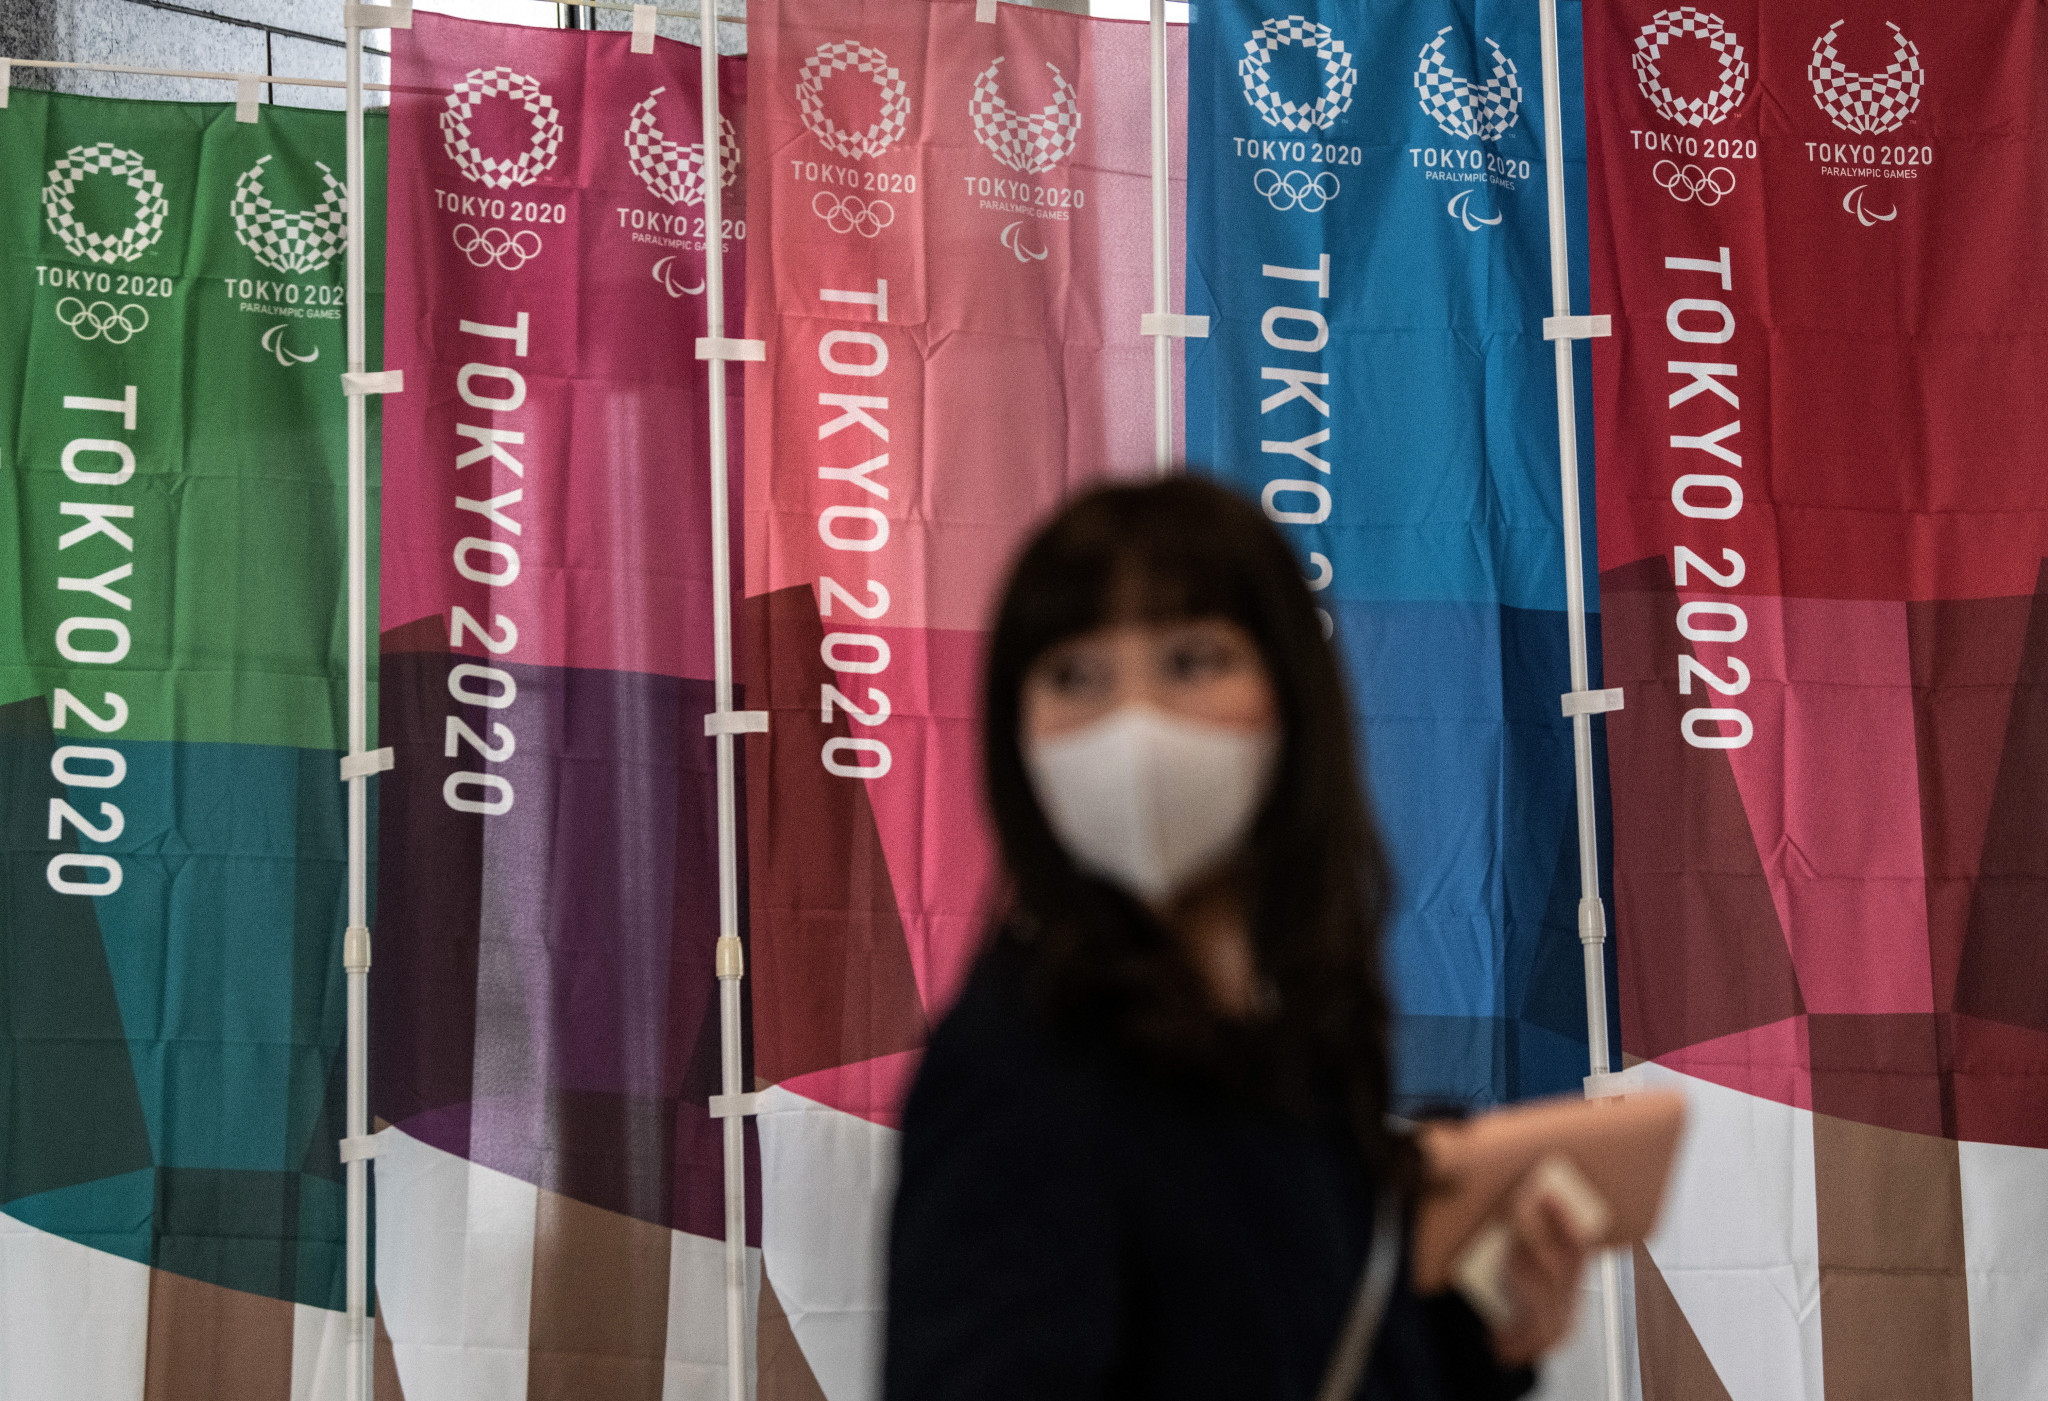 The are increasing calls for the postponement of Tokyo 2020 ©Getty Images